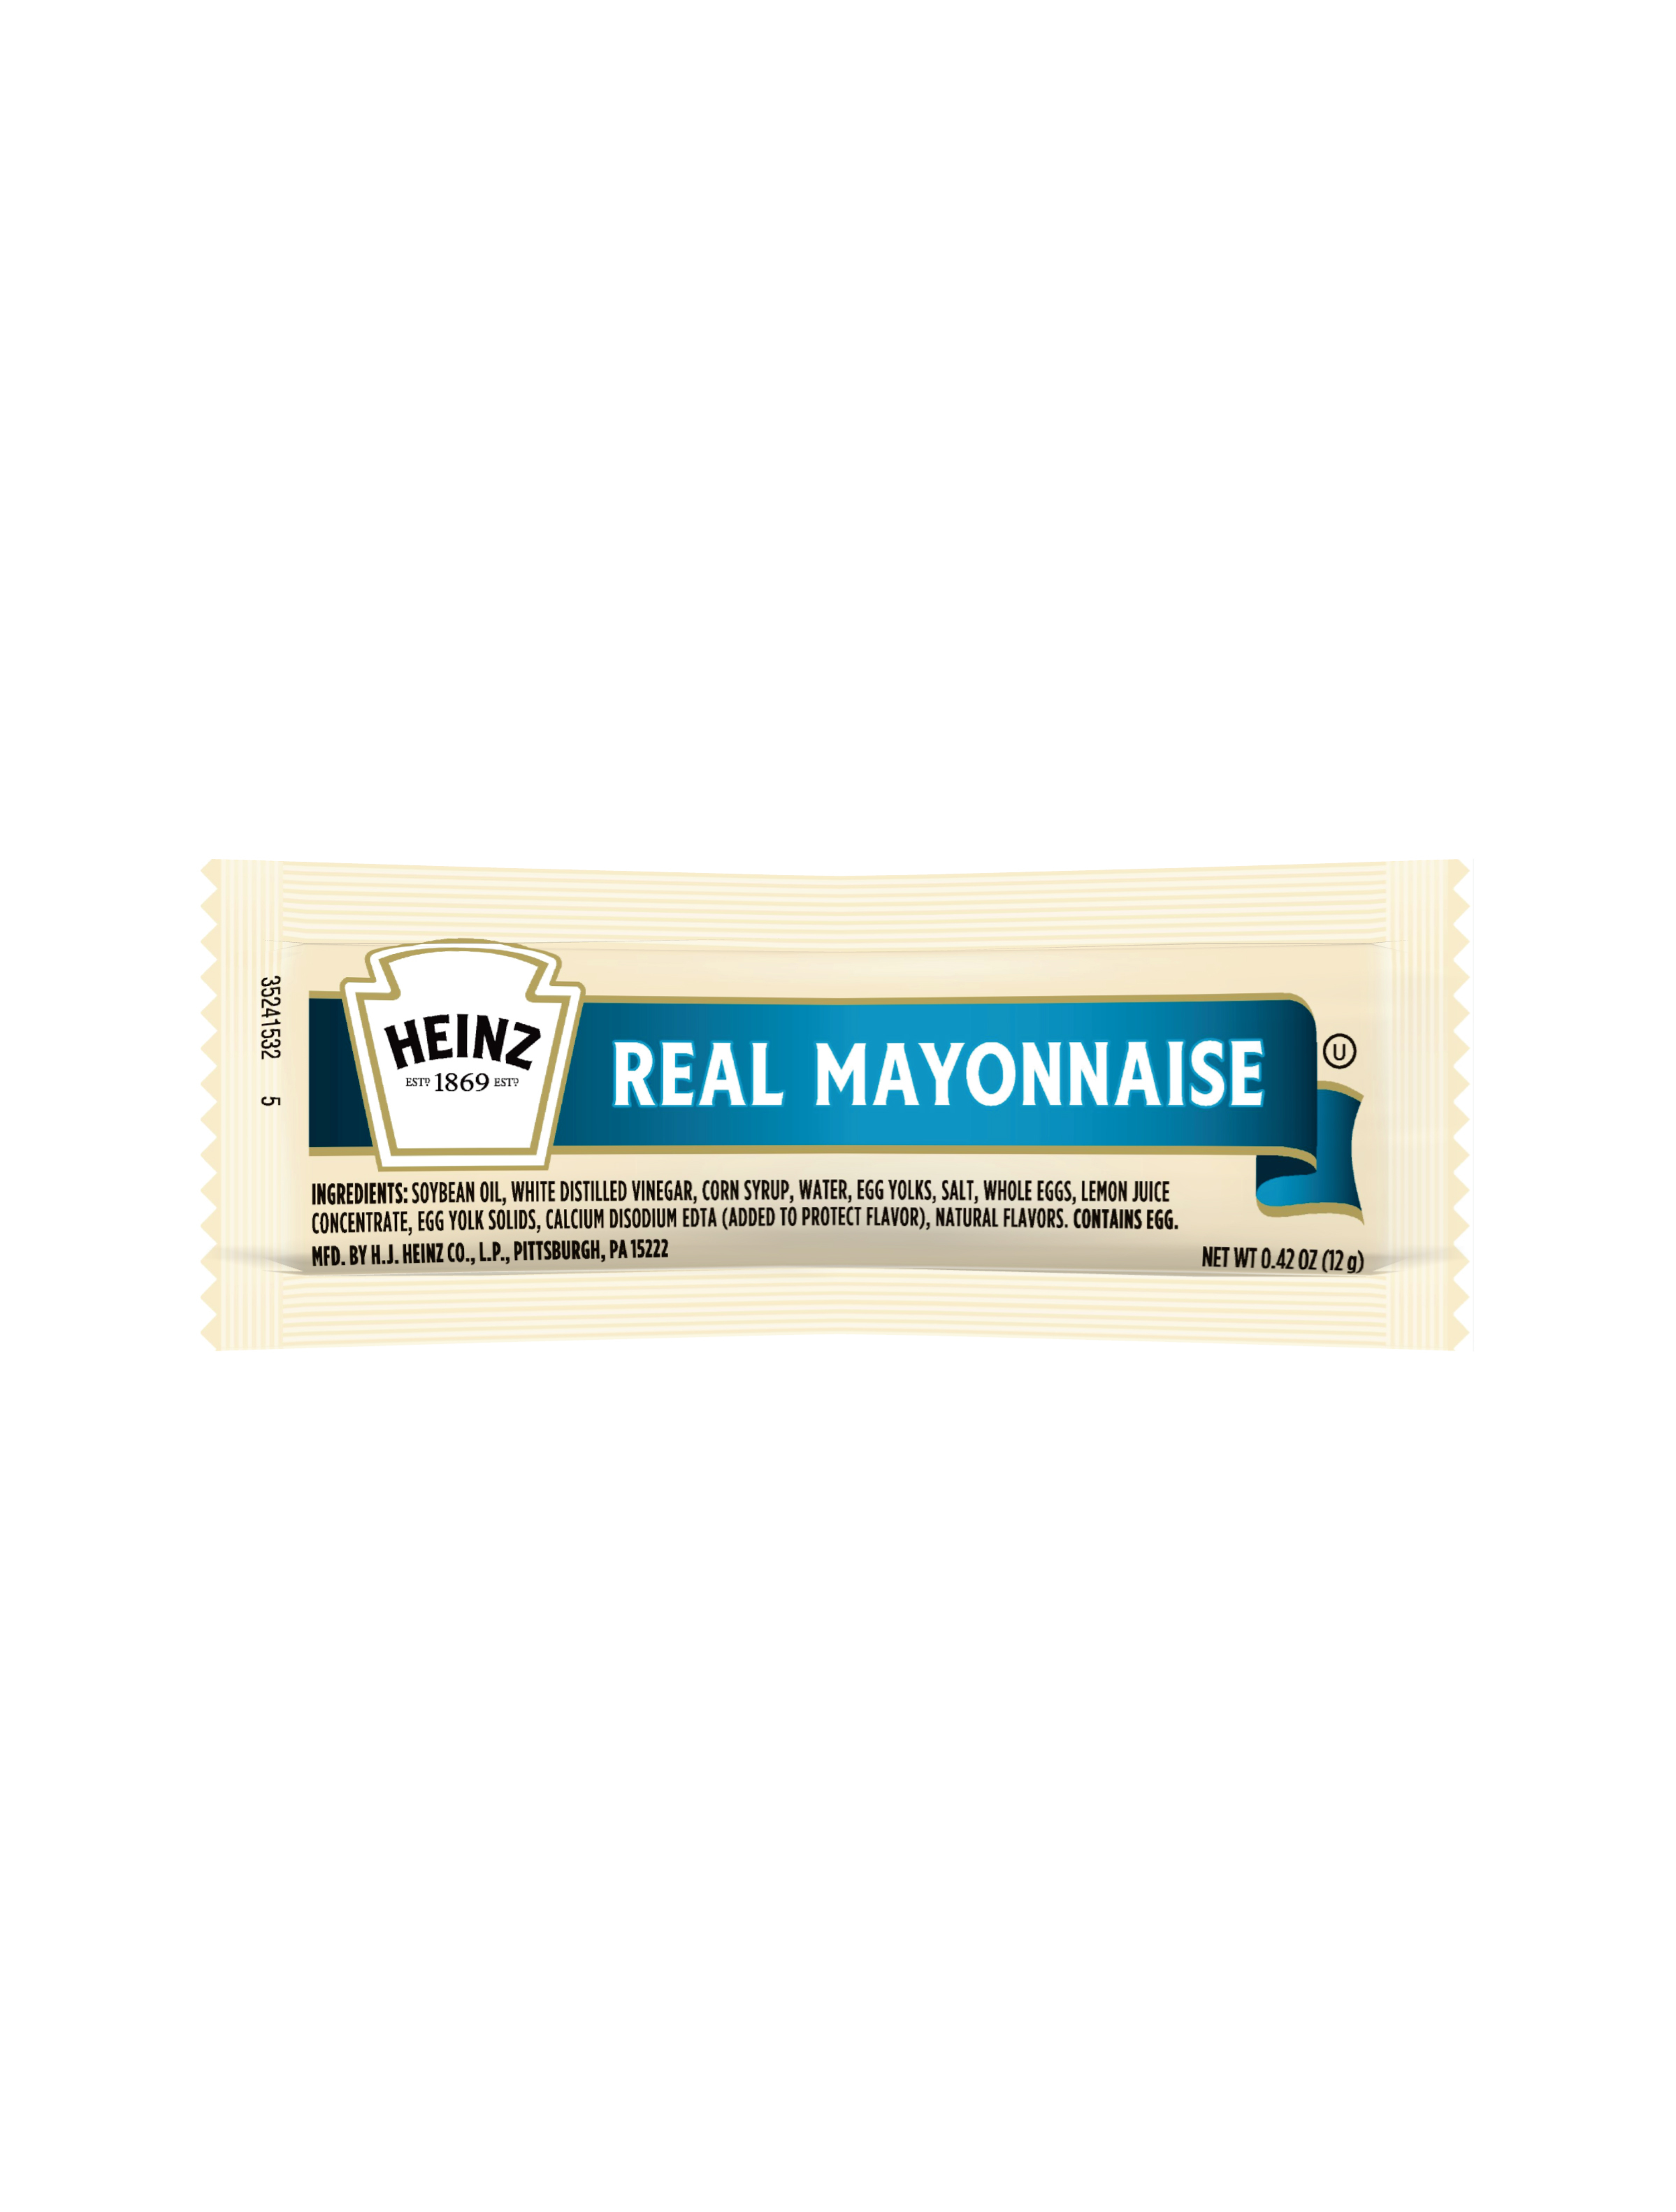 Heinz Mayonnaise Packet, 12 gm. image